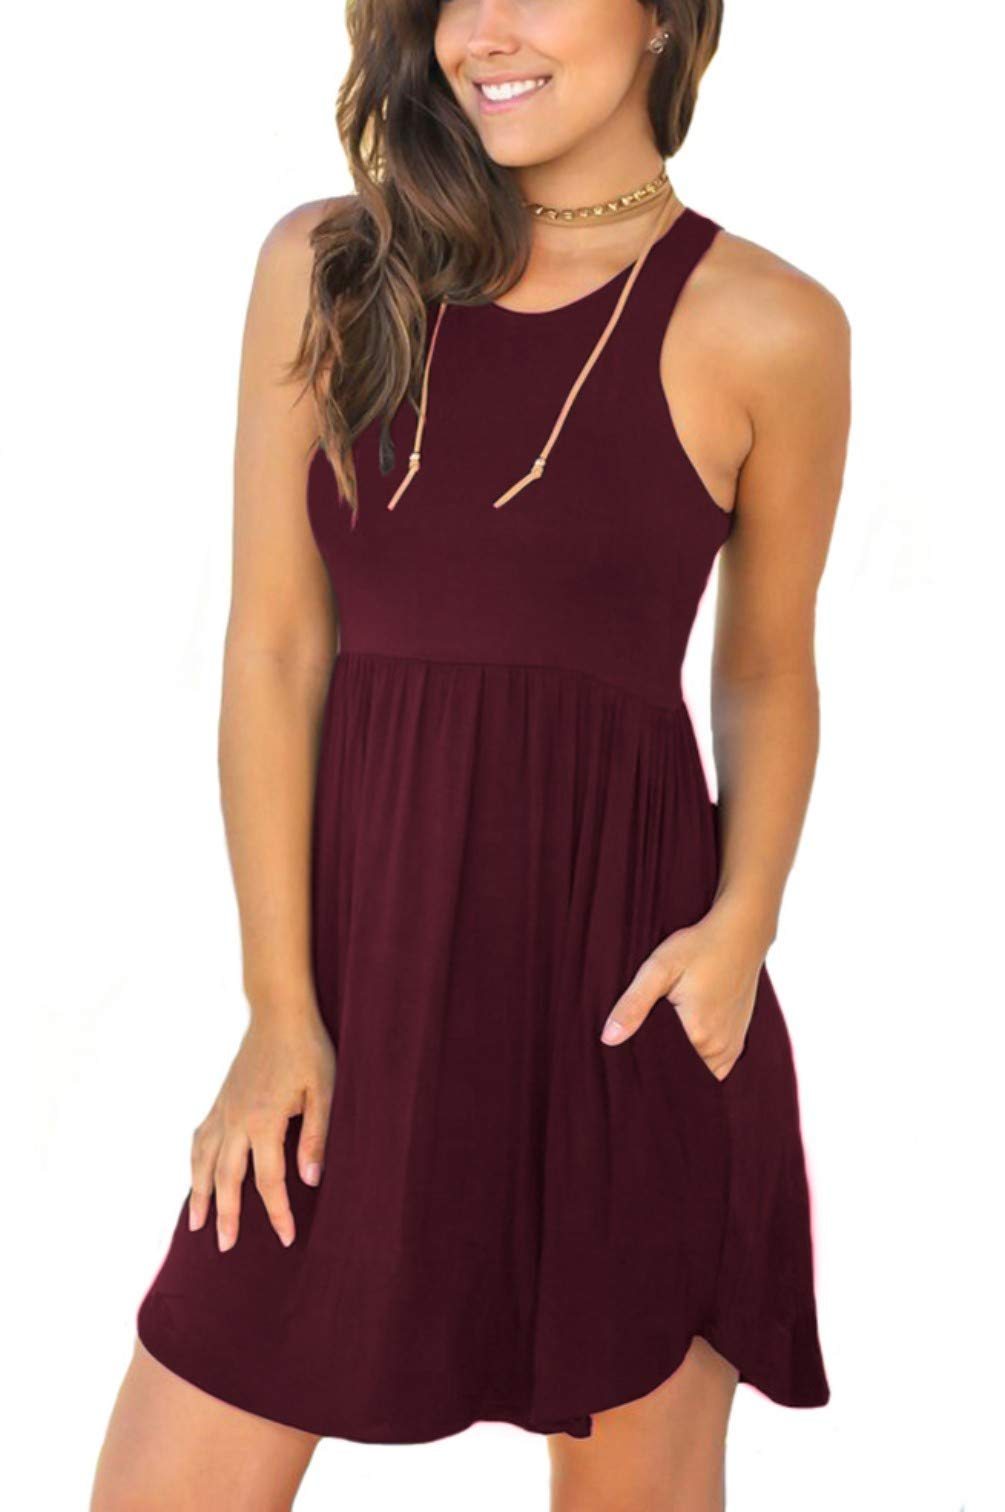 Unbranded Women'S Sleeveless Loose Plain Dresses Casual Short Dress With Pockets Small, 02 Wine Red by Unbranded*